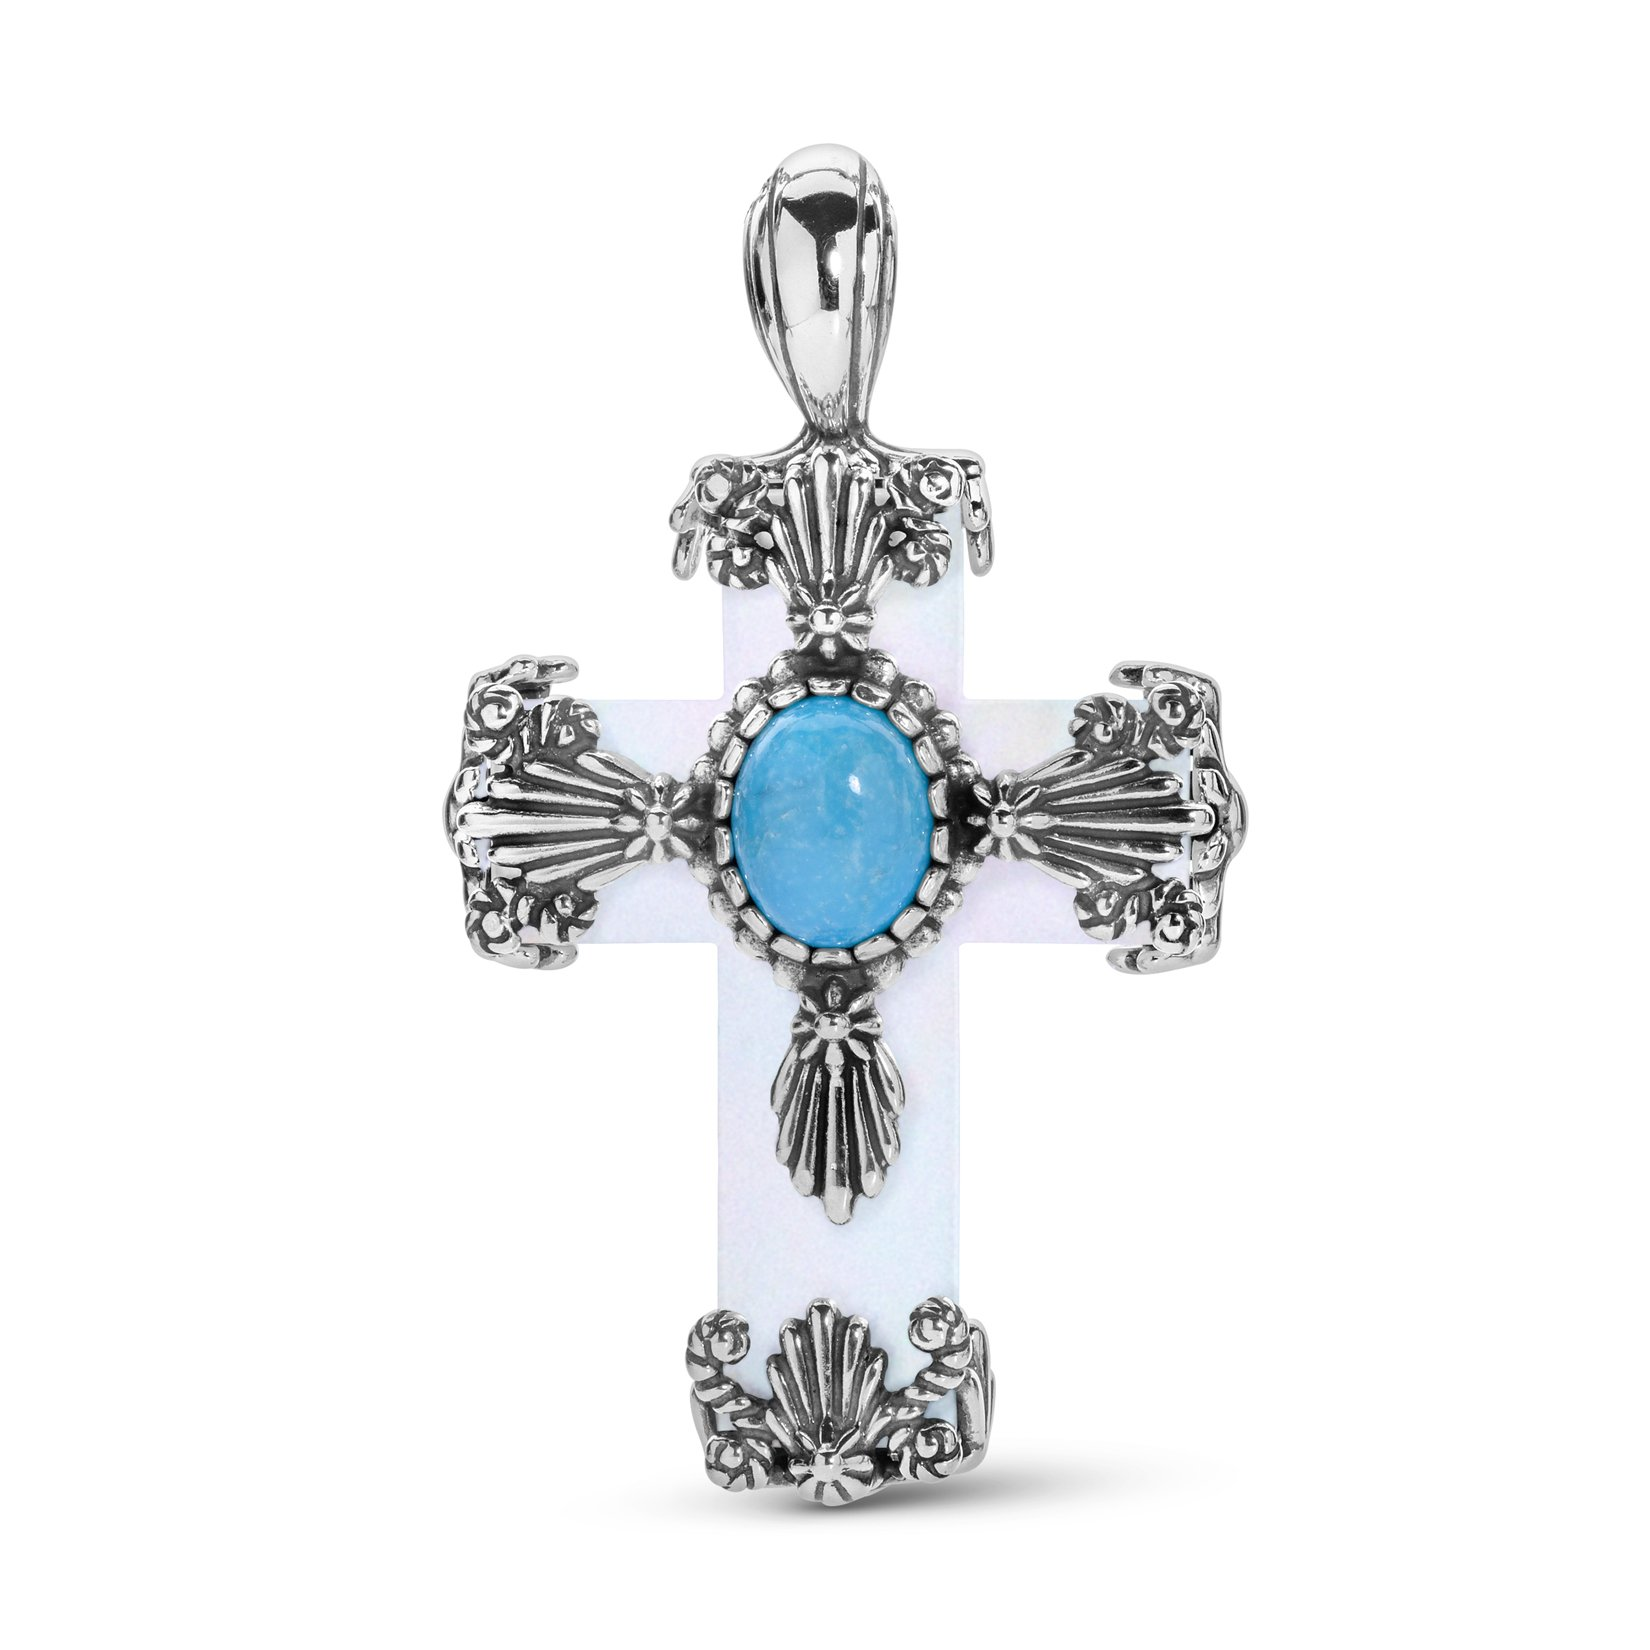 American West Sterling Silver, Mother of Pearl & Blue Turquoise Floral Cross 2'' Necklace Enhancer Pendant by American West (Image #1)